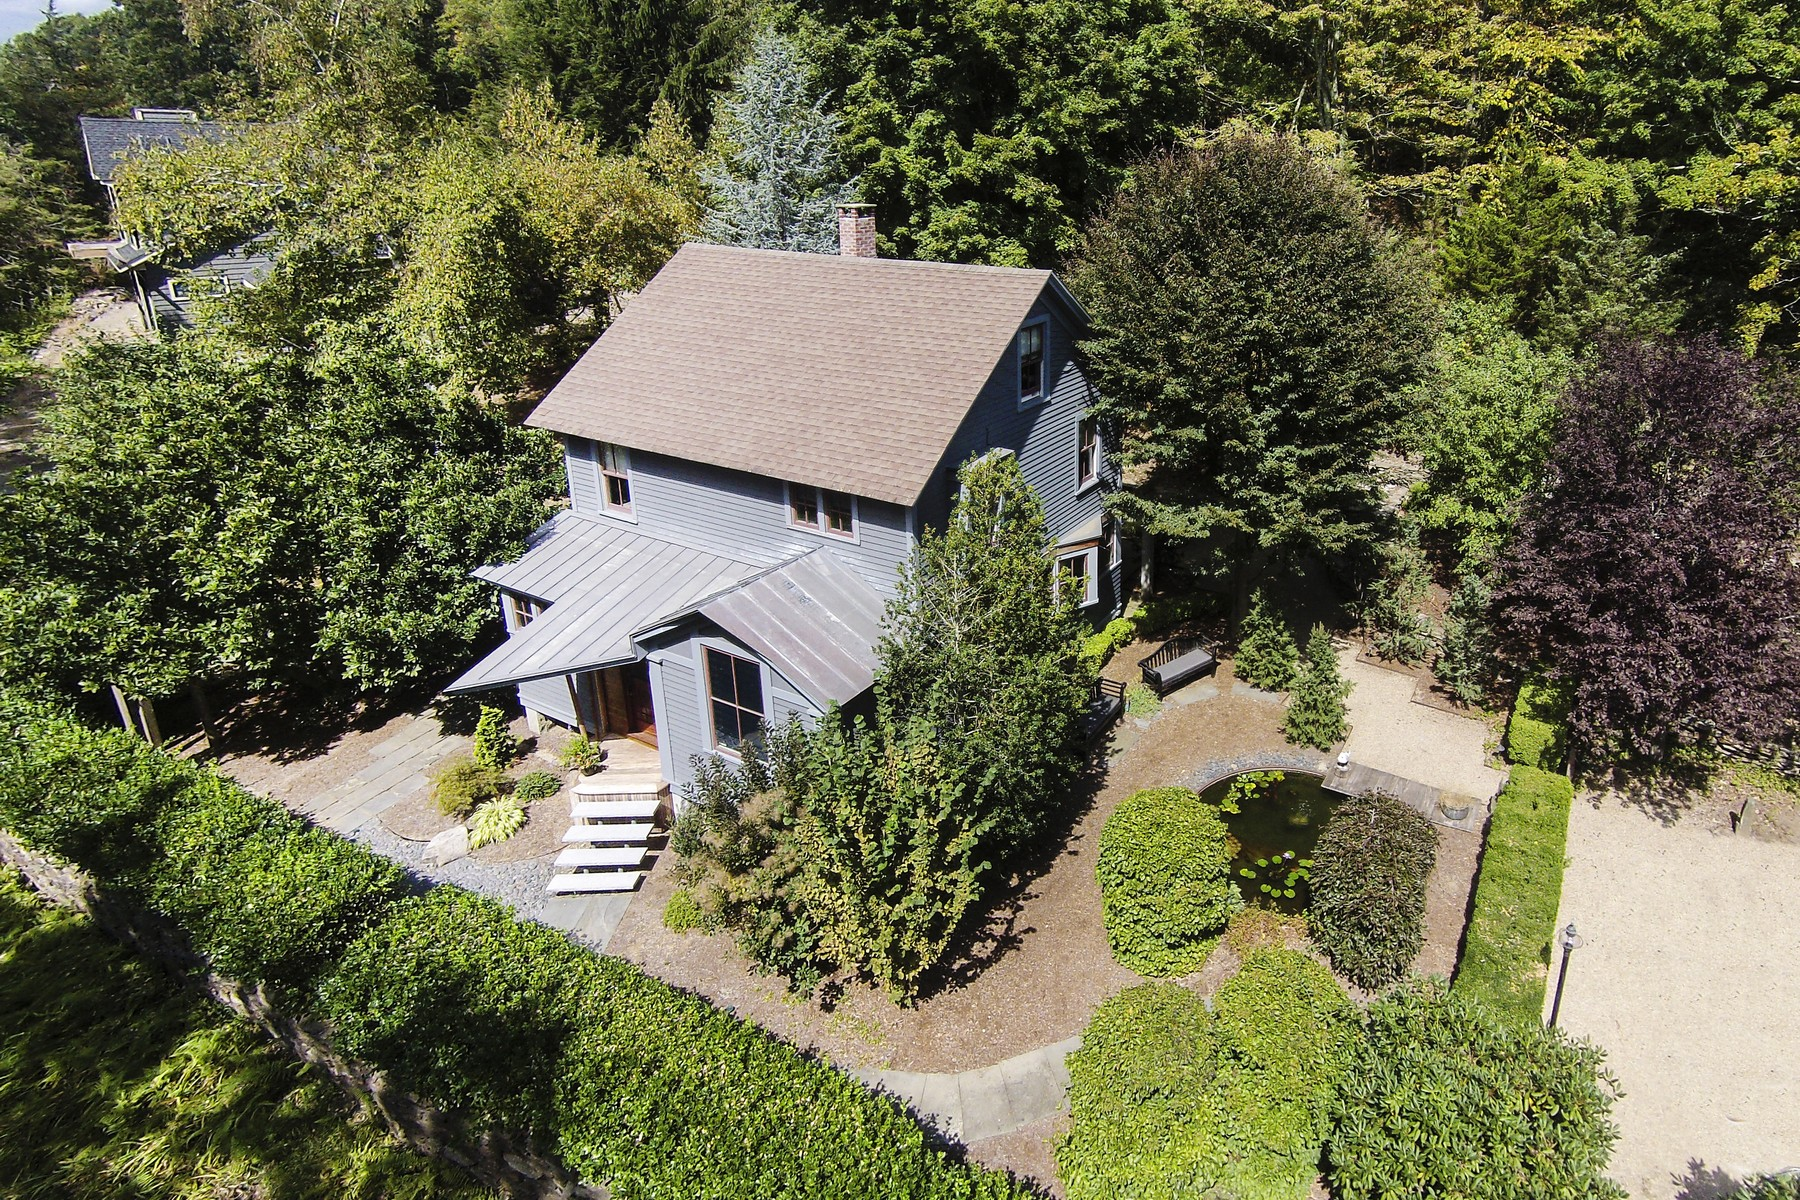 Single Family Home for Sale at Remarkable Architecturally Designed Renovation 20 Bokum Rd Deep River, Connecticut 06417 United States